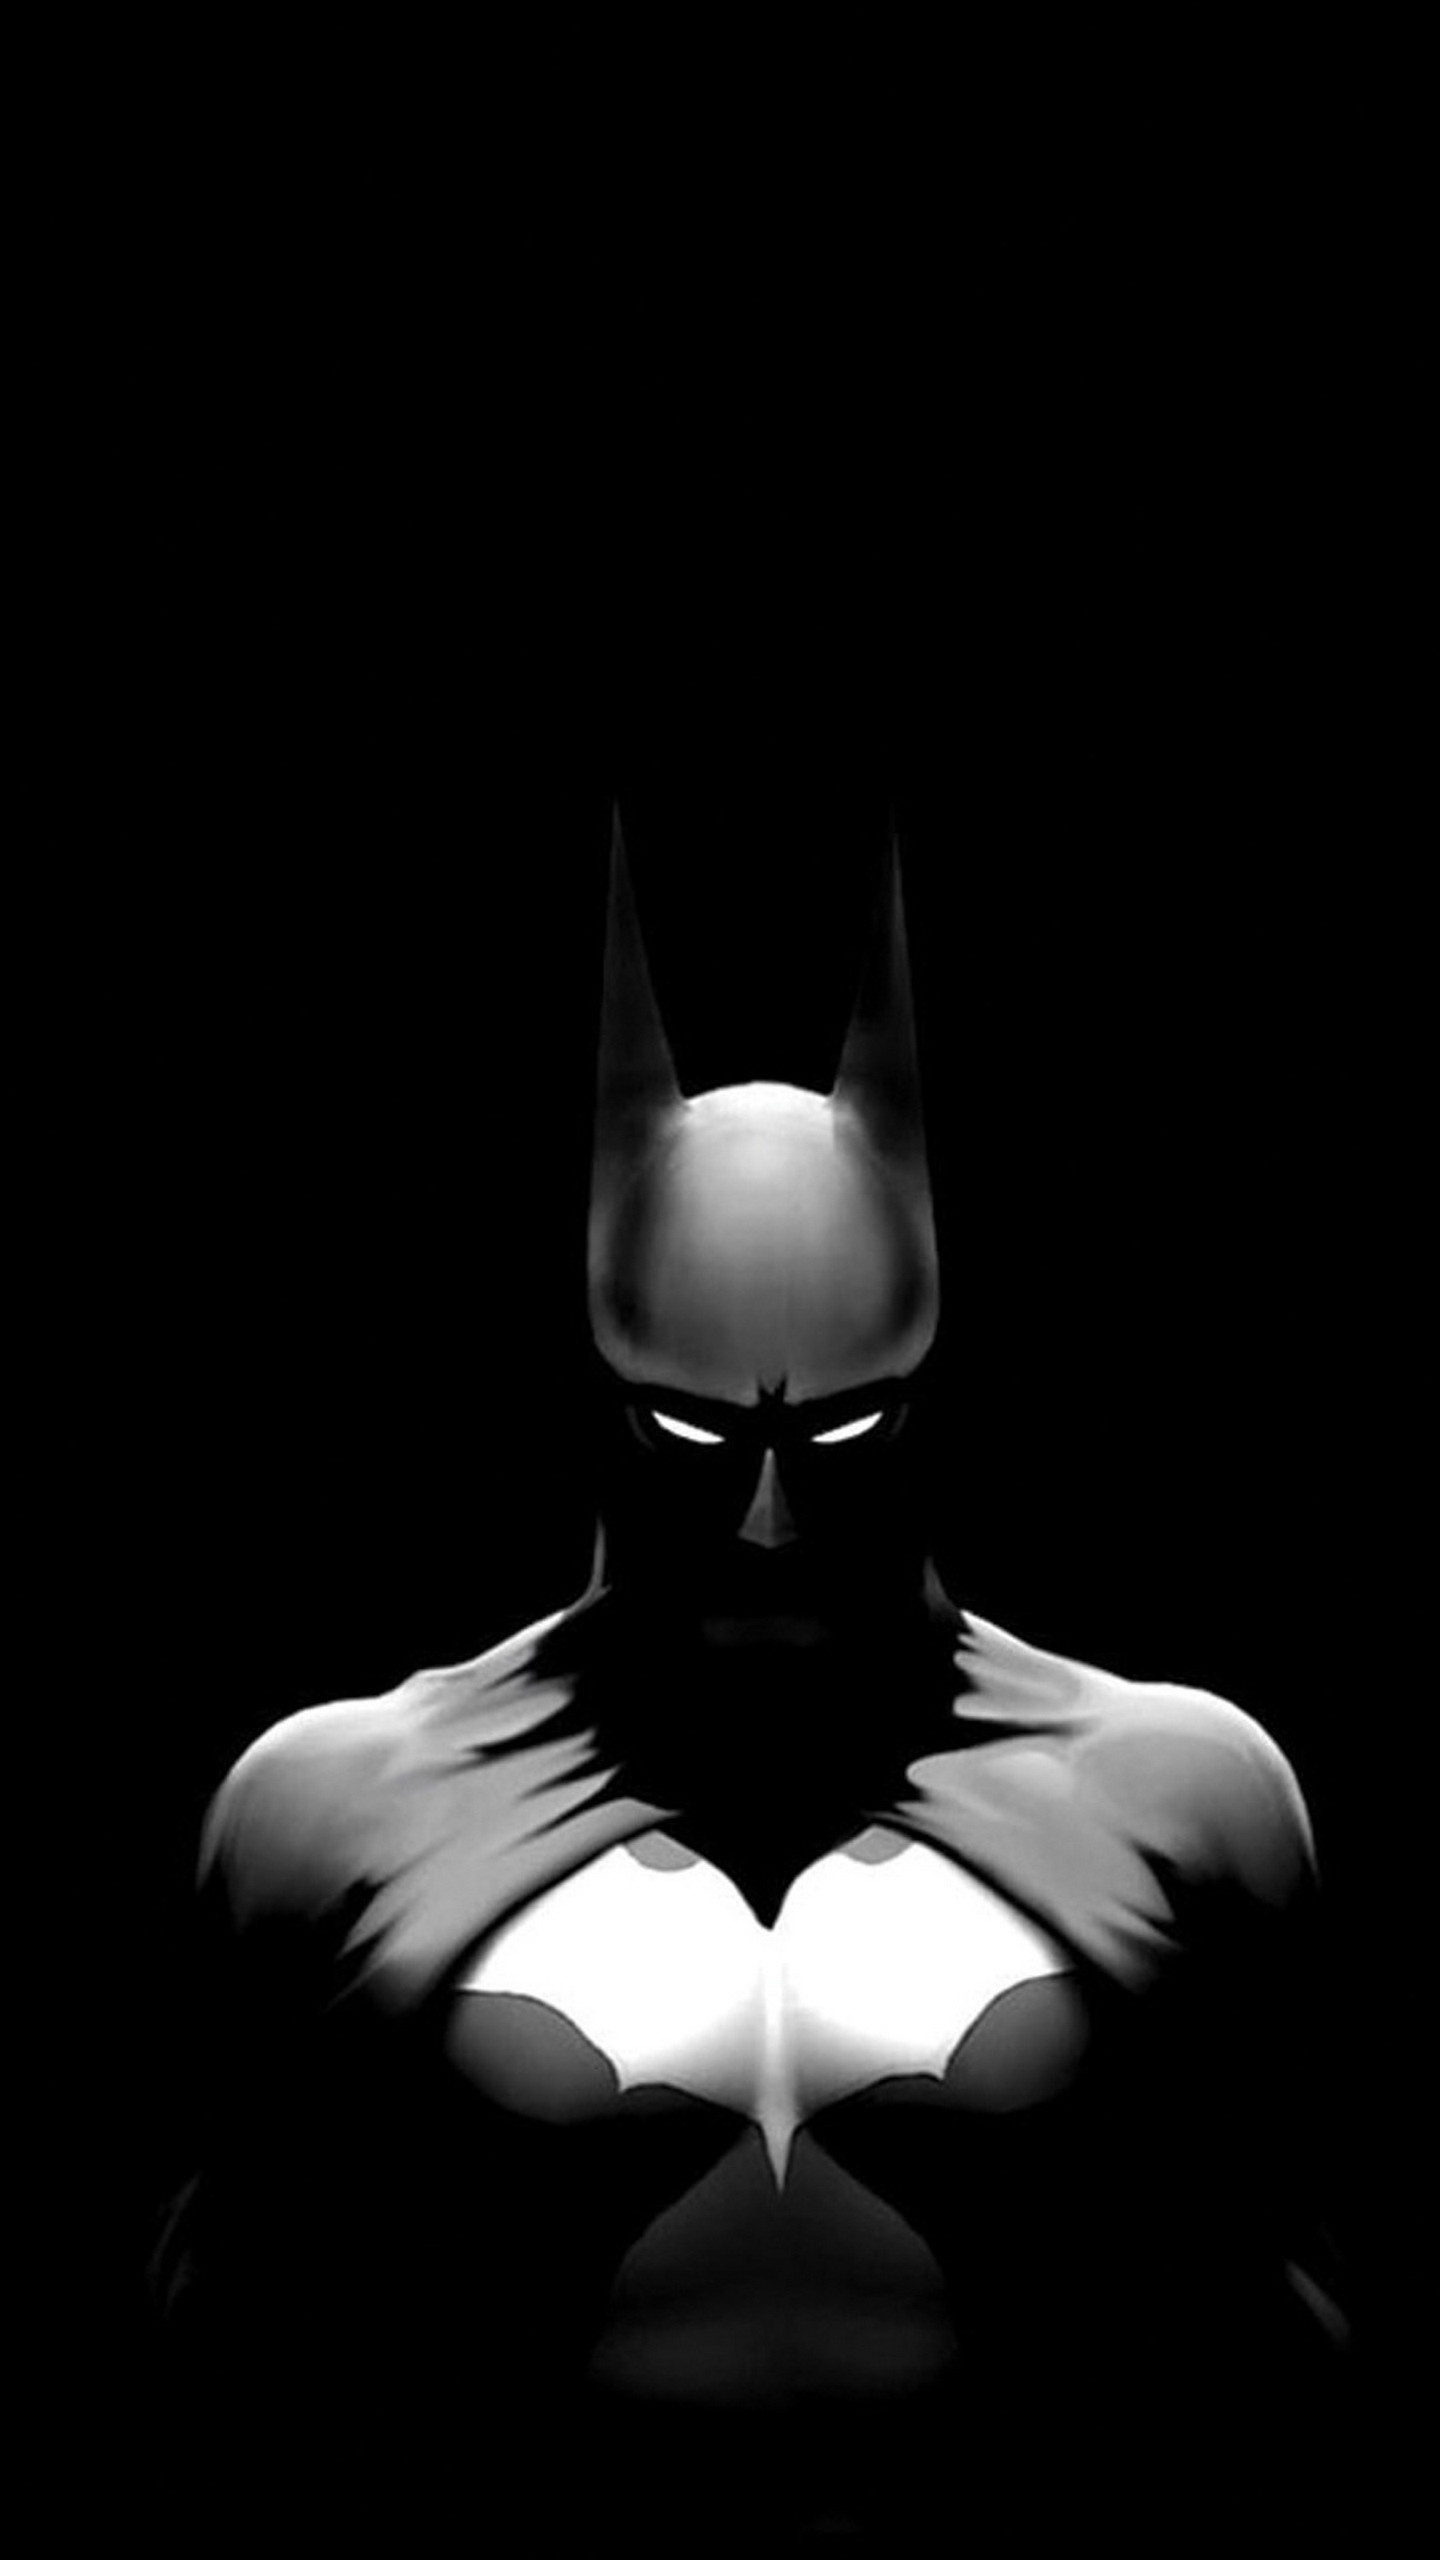 1440x2560 Batman Dark Lock Screen 1440A 2560 Samsung Galaxy Note 4 Wallpaper